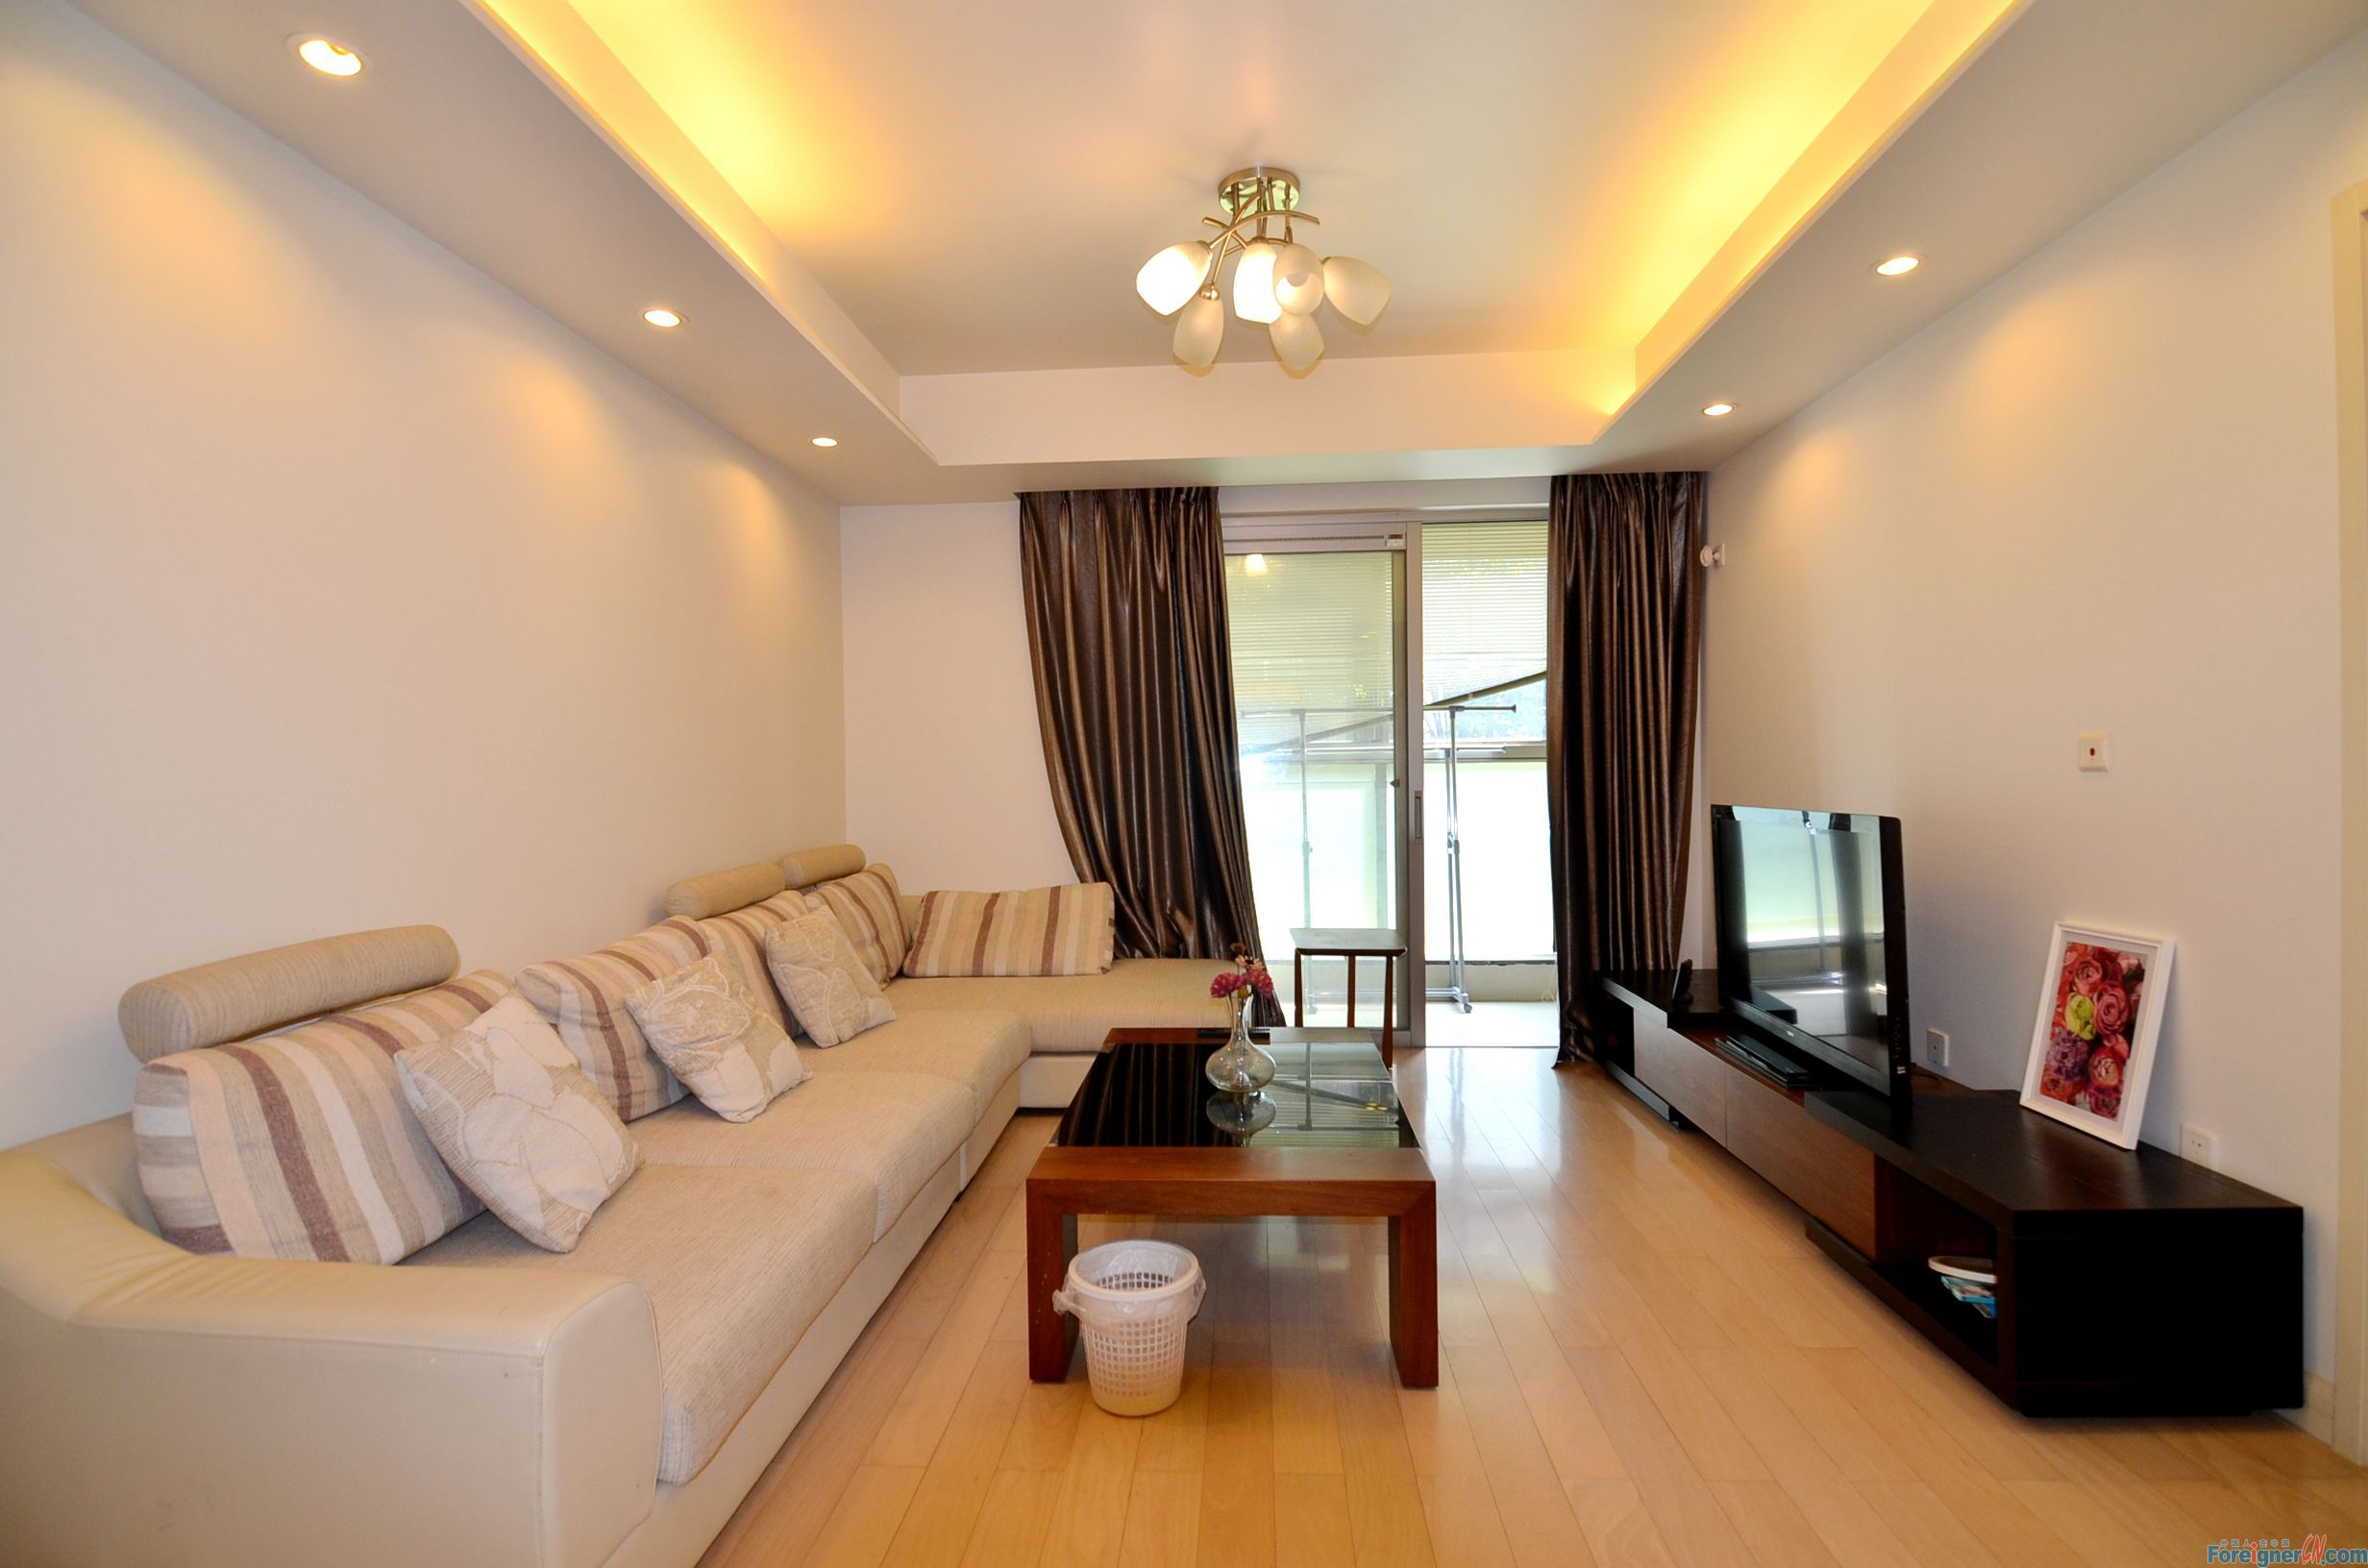 Grace residence/floor heating/central ac/modern 2 rms/close to metro & shoppping mall